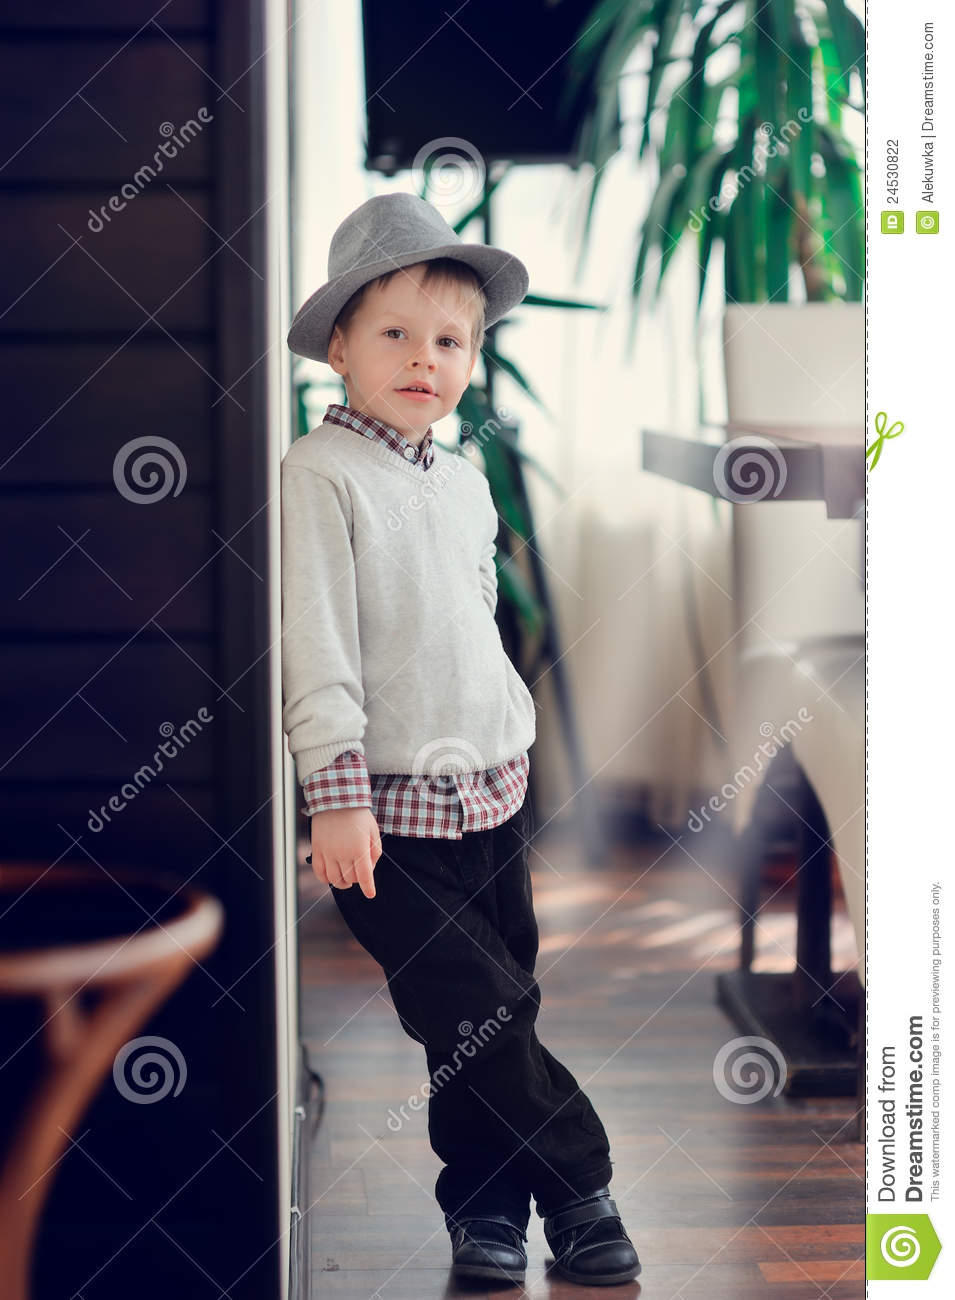 Small model stock photo. Image of portrait, look, chamber